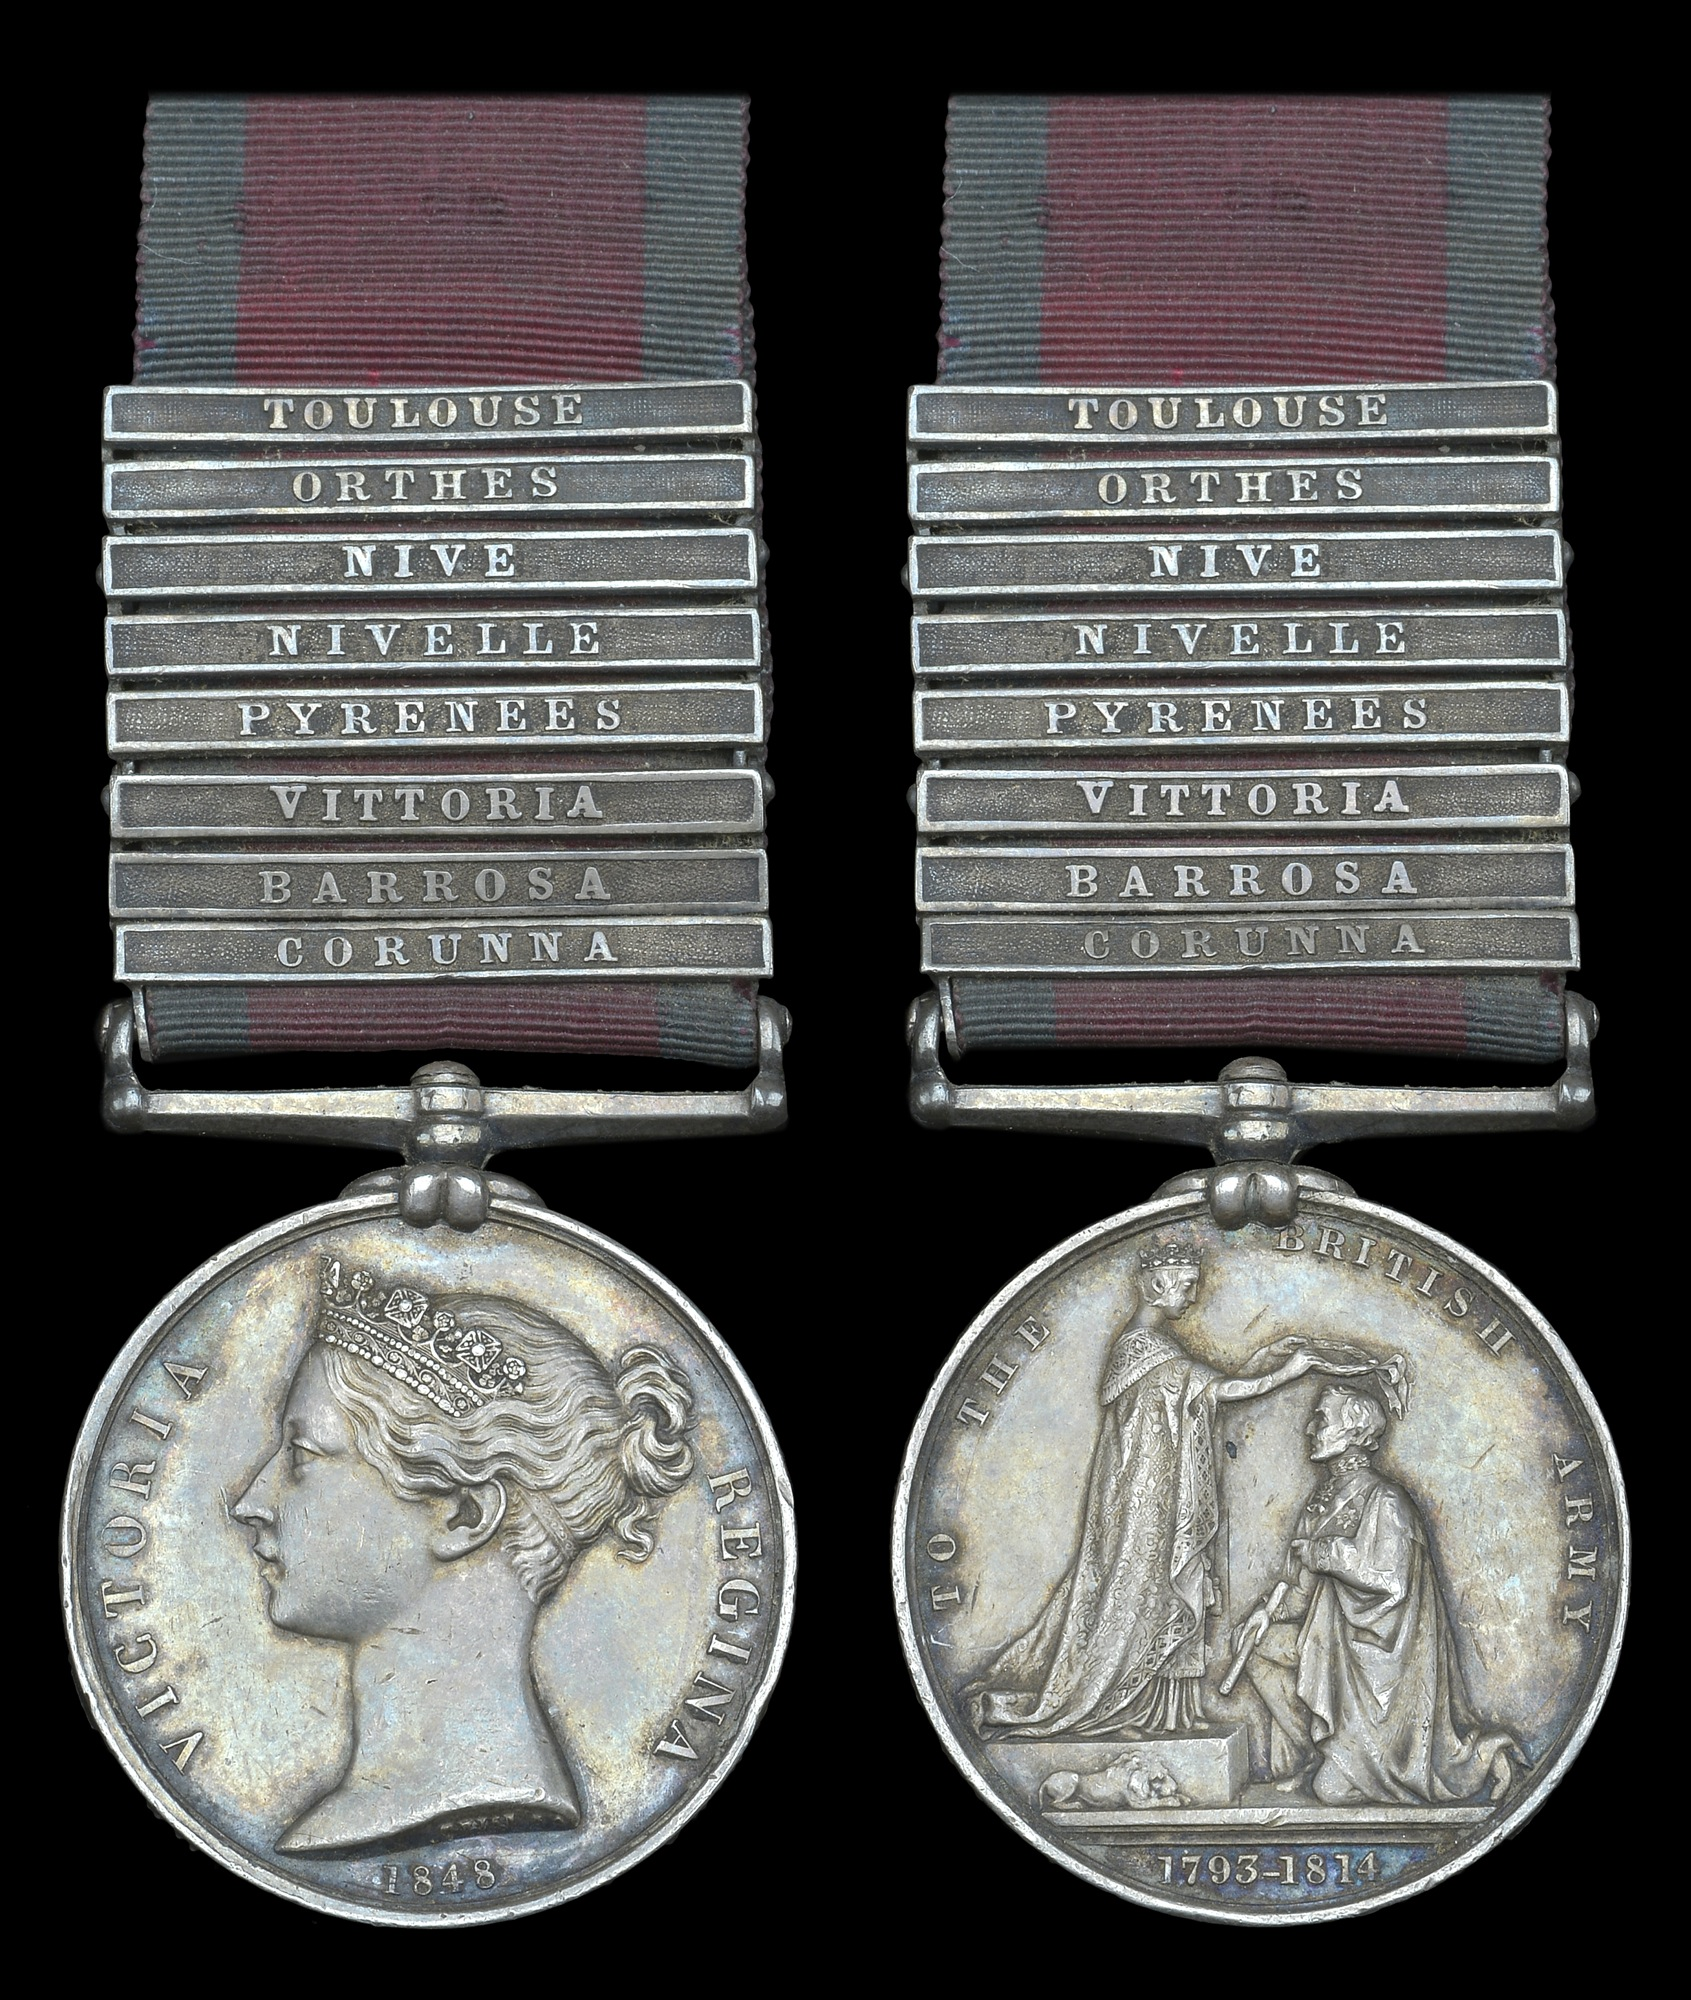 Figure 3 - Military General Service Medal Obverse(left) and Reverse (right). Image courtesy of DNW.